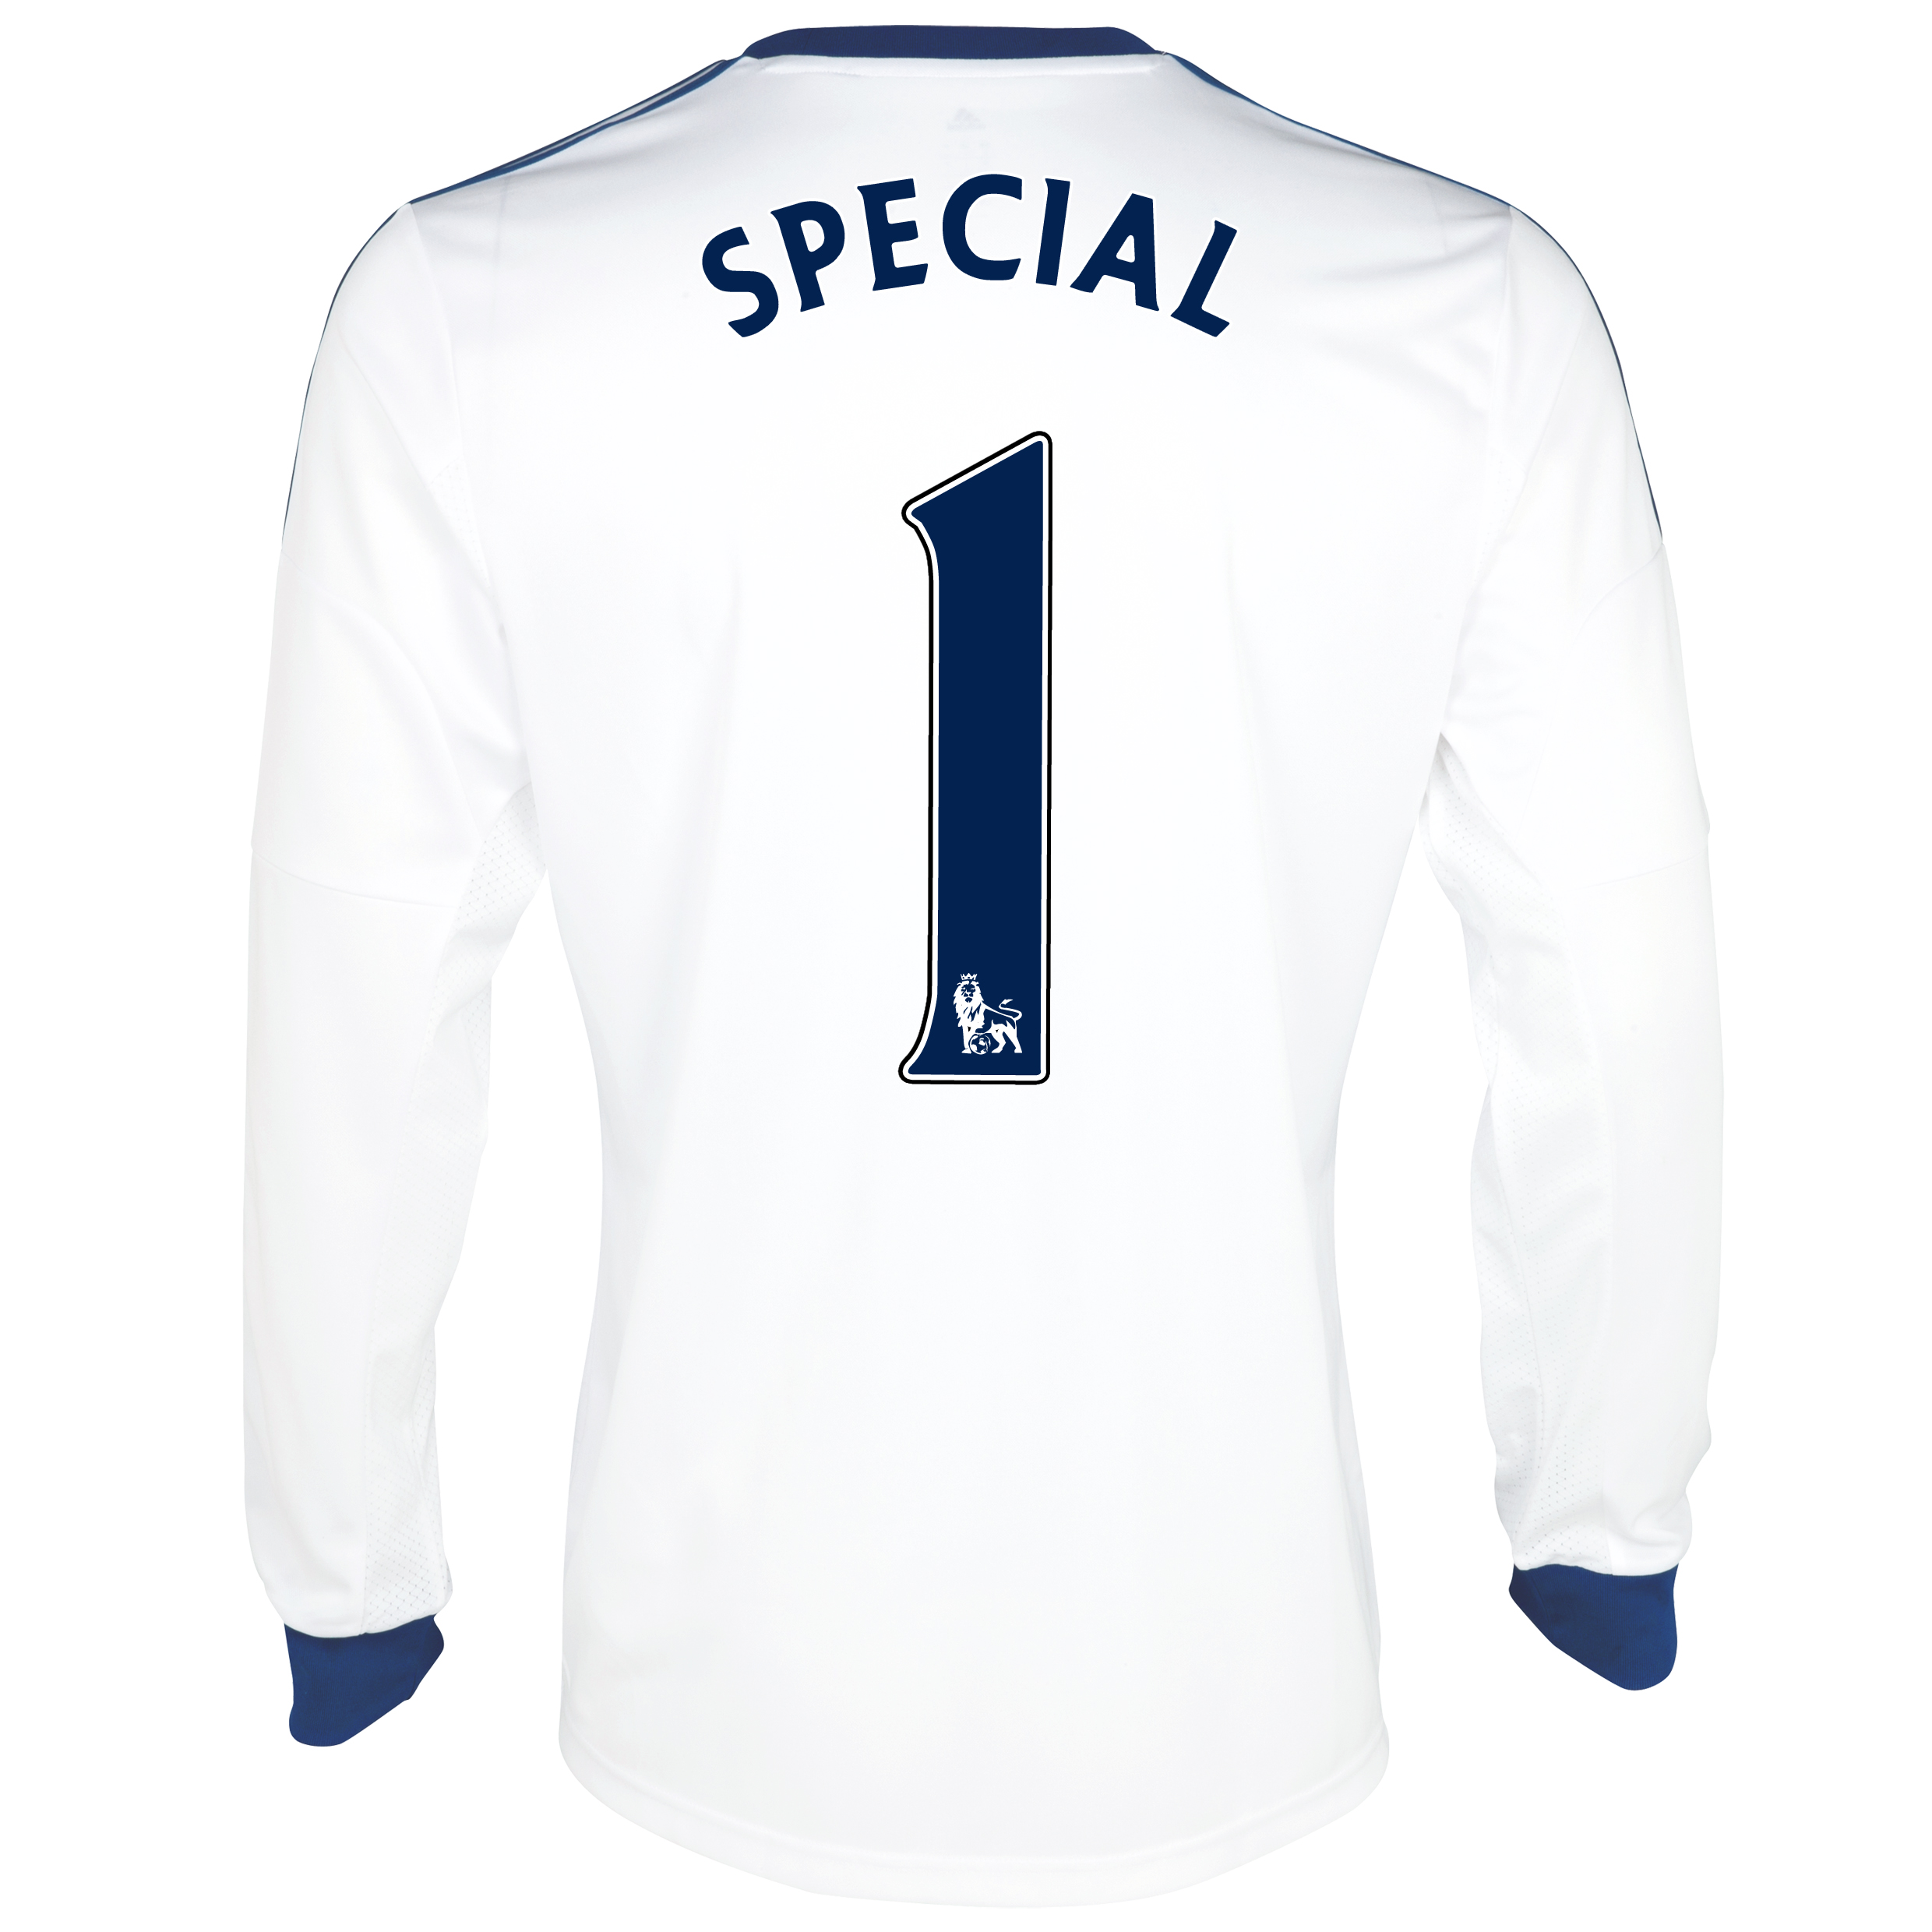 Chelsea Away Shirt 2013/14- Long Sleeve with Special 1 printing